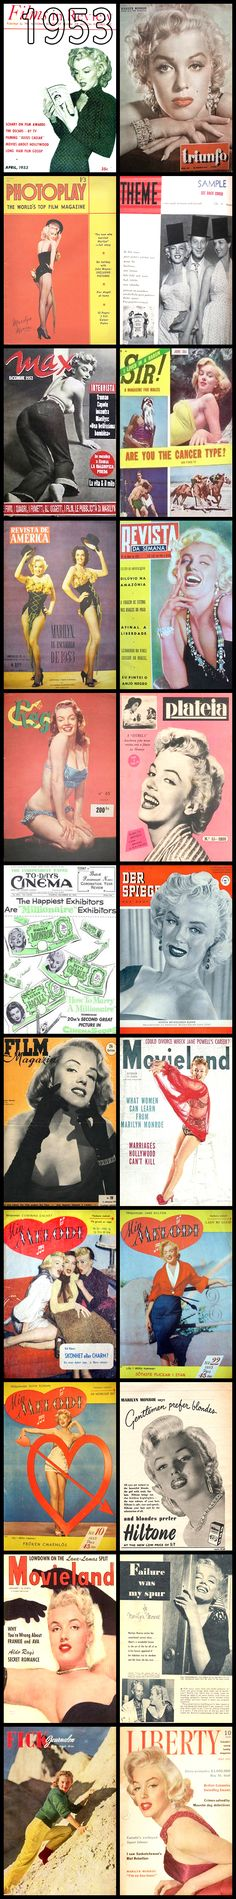 Magazine covers of Marilyn Monroe